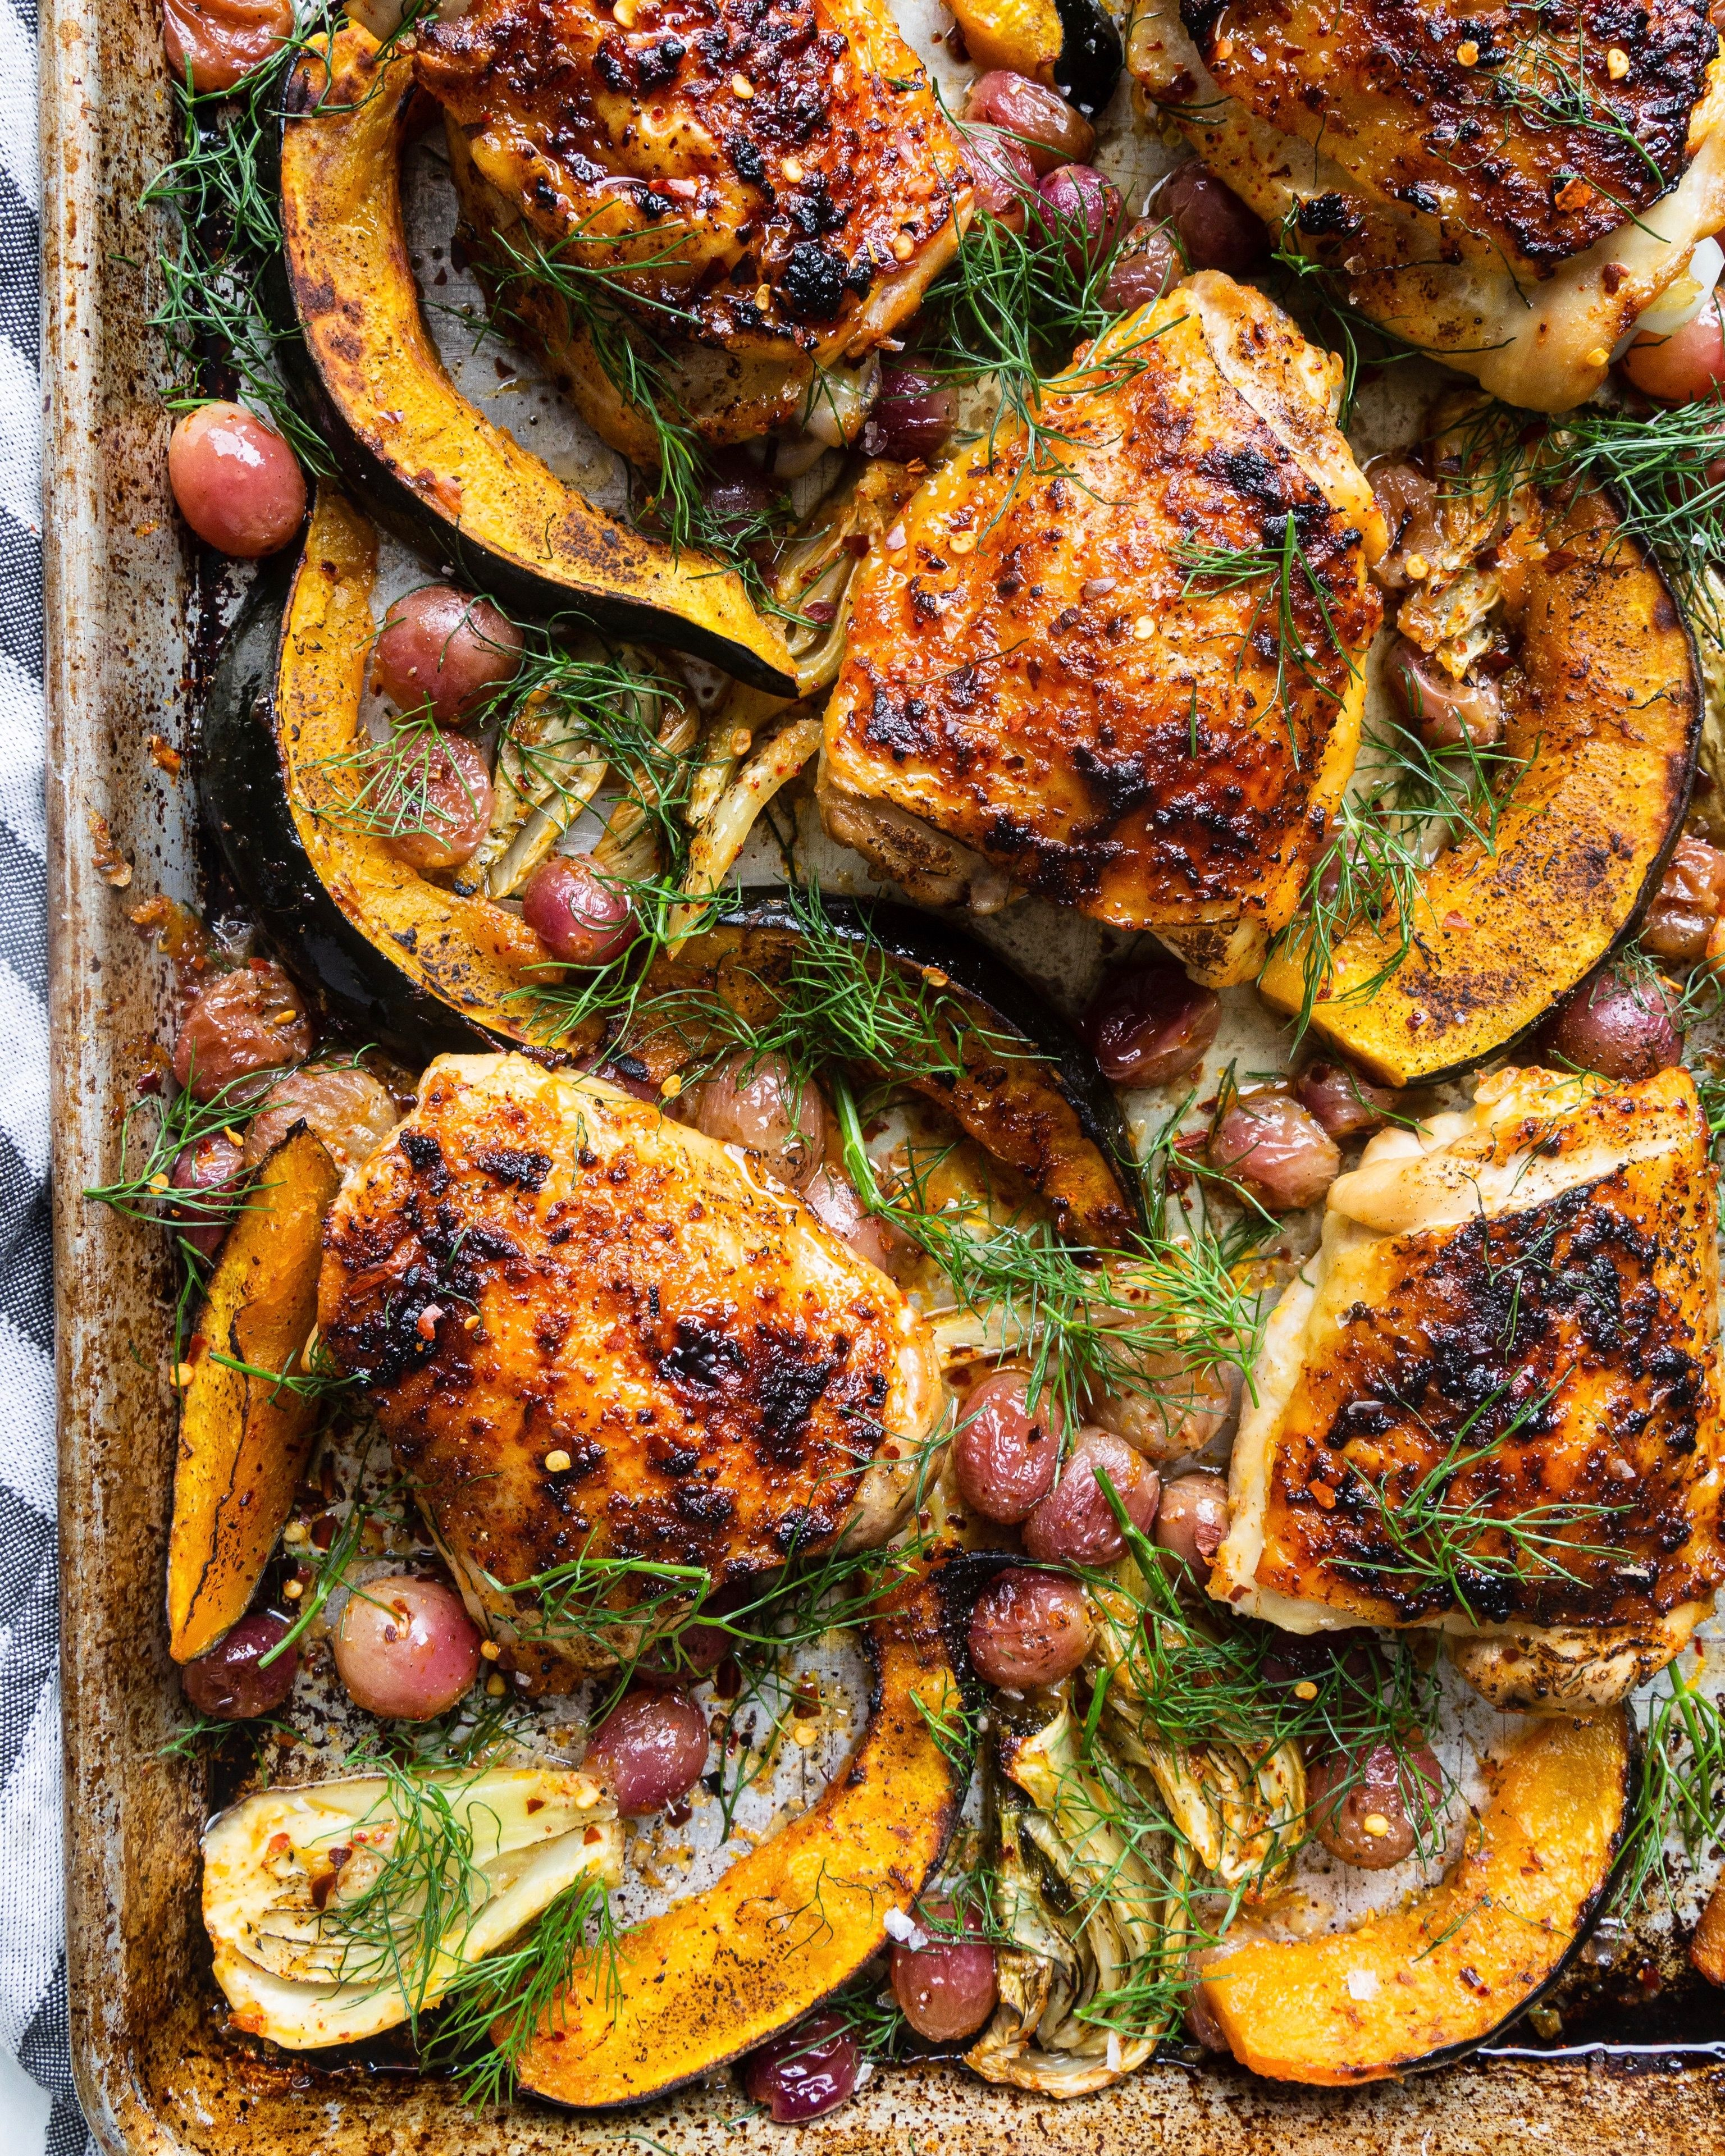 Sheet Pan Maple-Dijon Chicken Thighs with Fennel, Grapes, and Acorn Squash